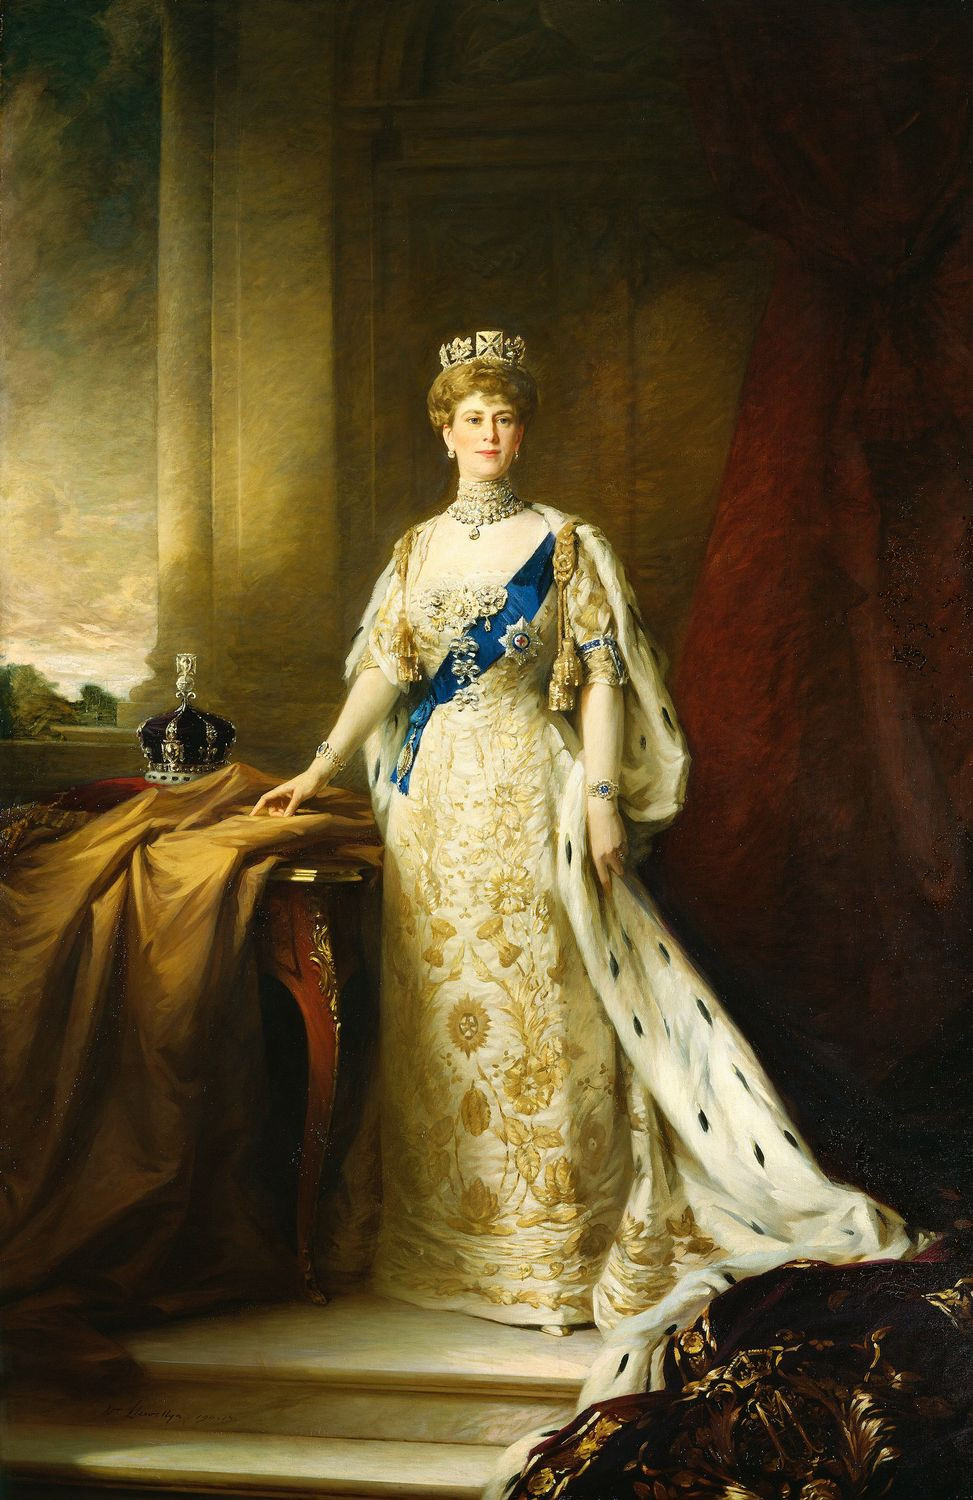 Coronation portrait of Queen Mary of Teck by luke fildes